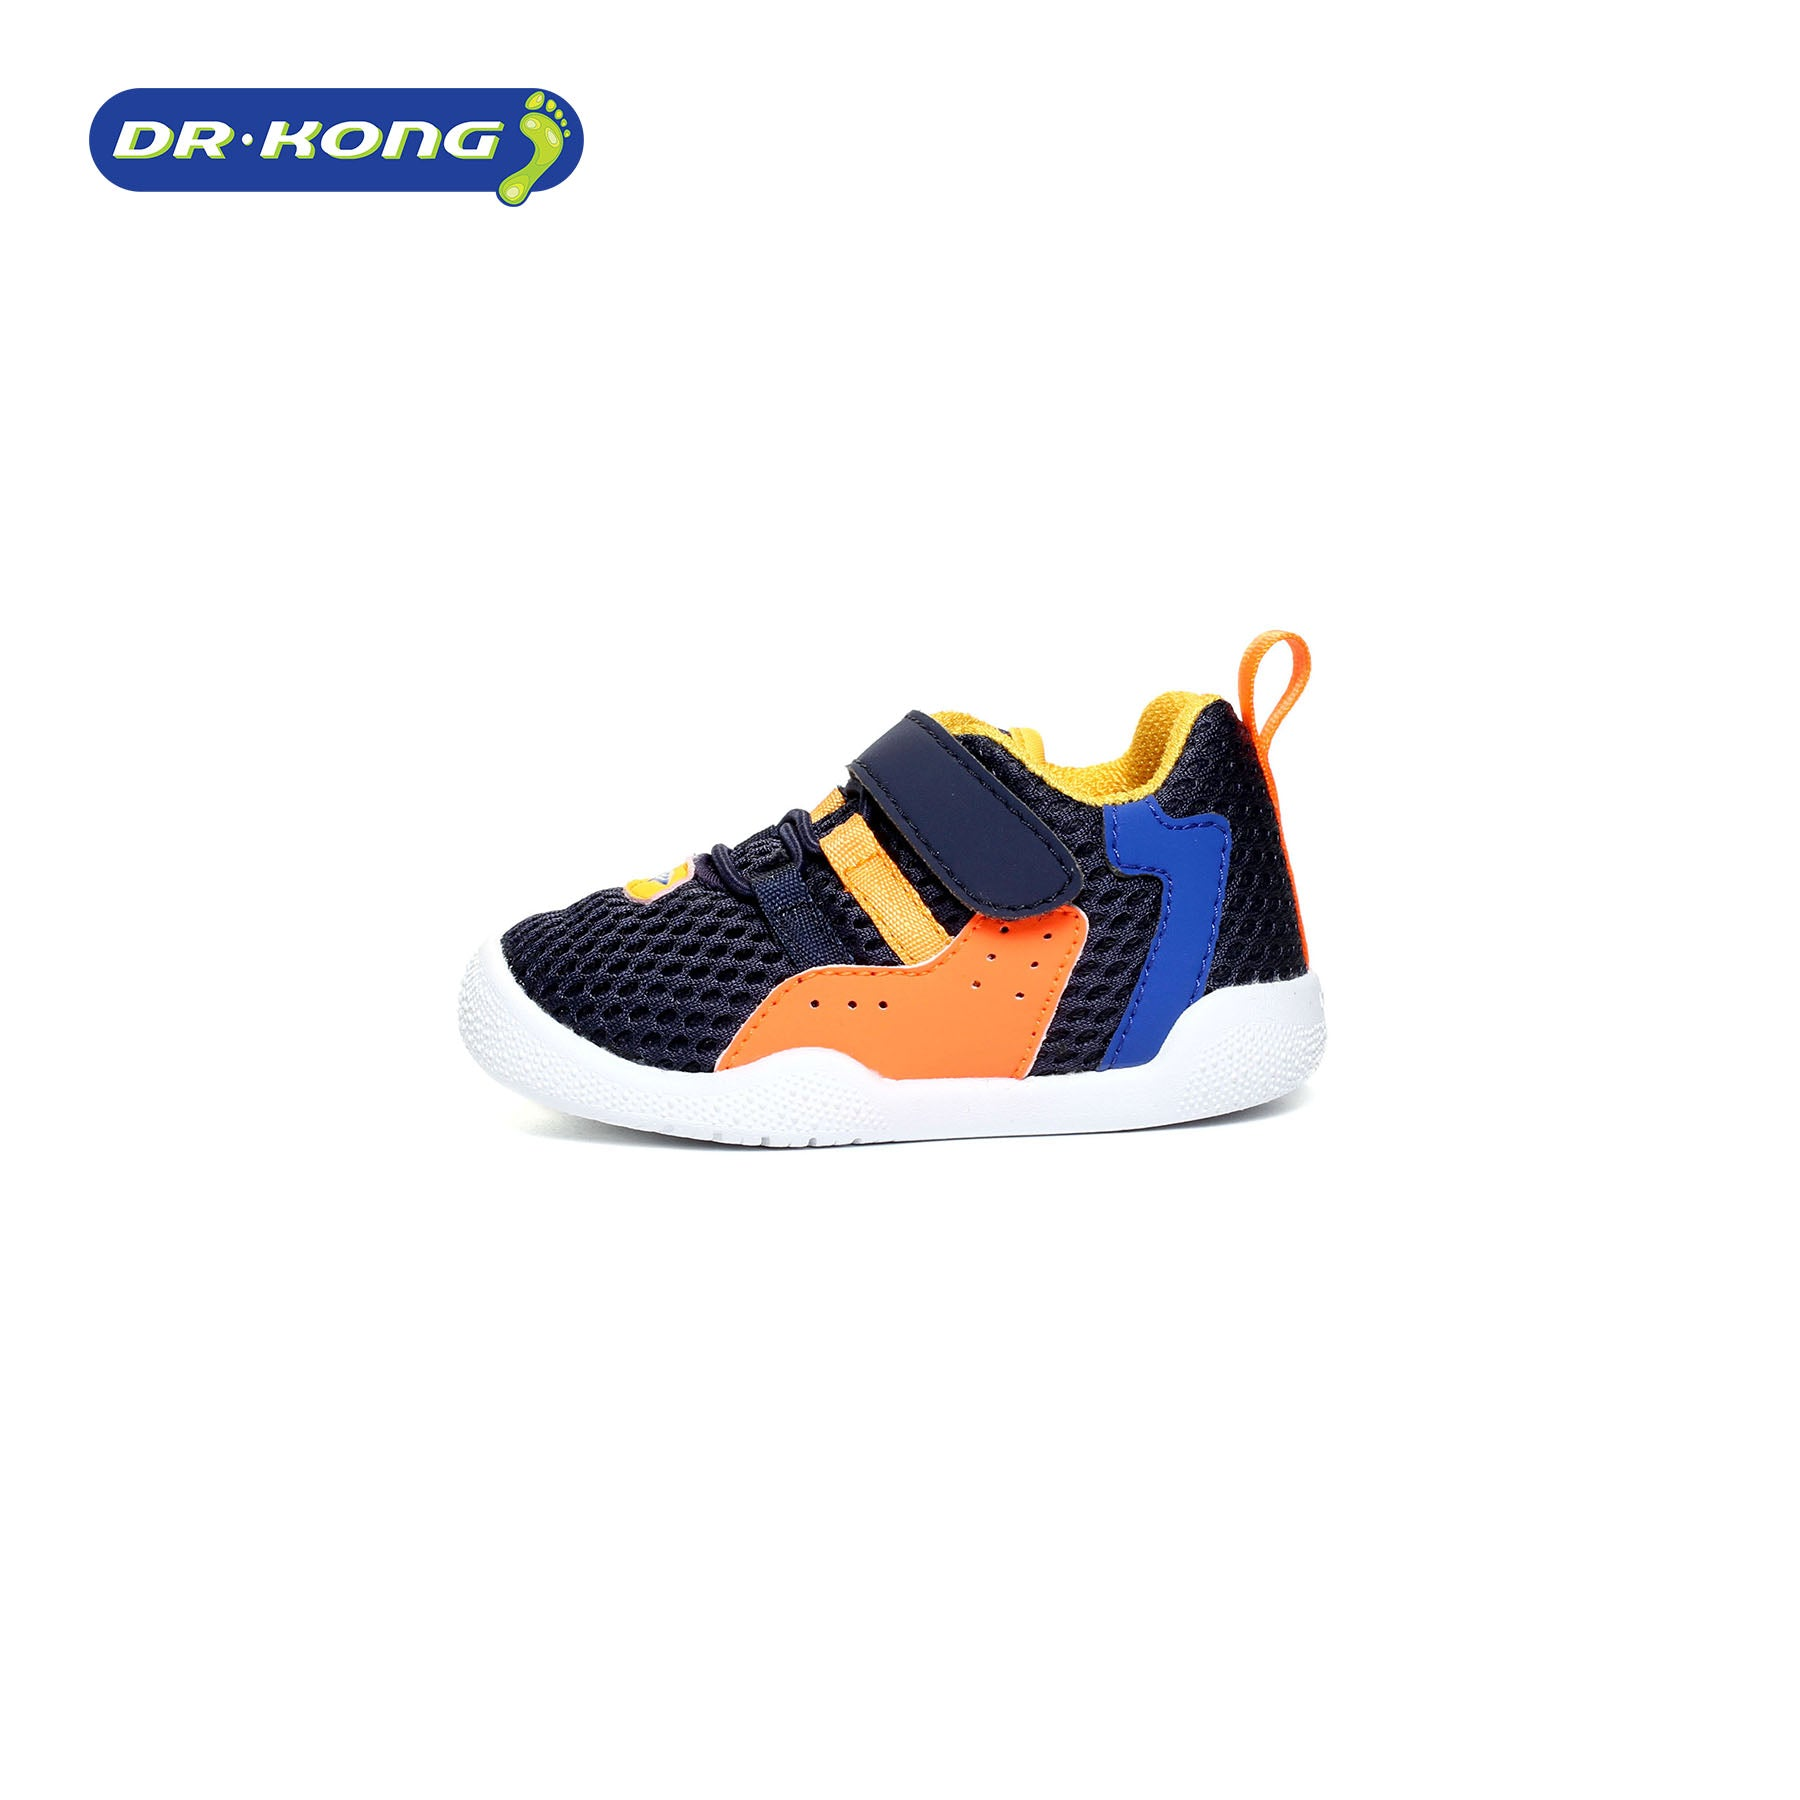 Dr. Kong Baby 123 shoes B1300342 (Dark Blue)